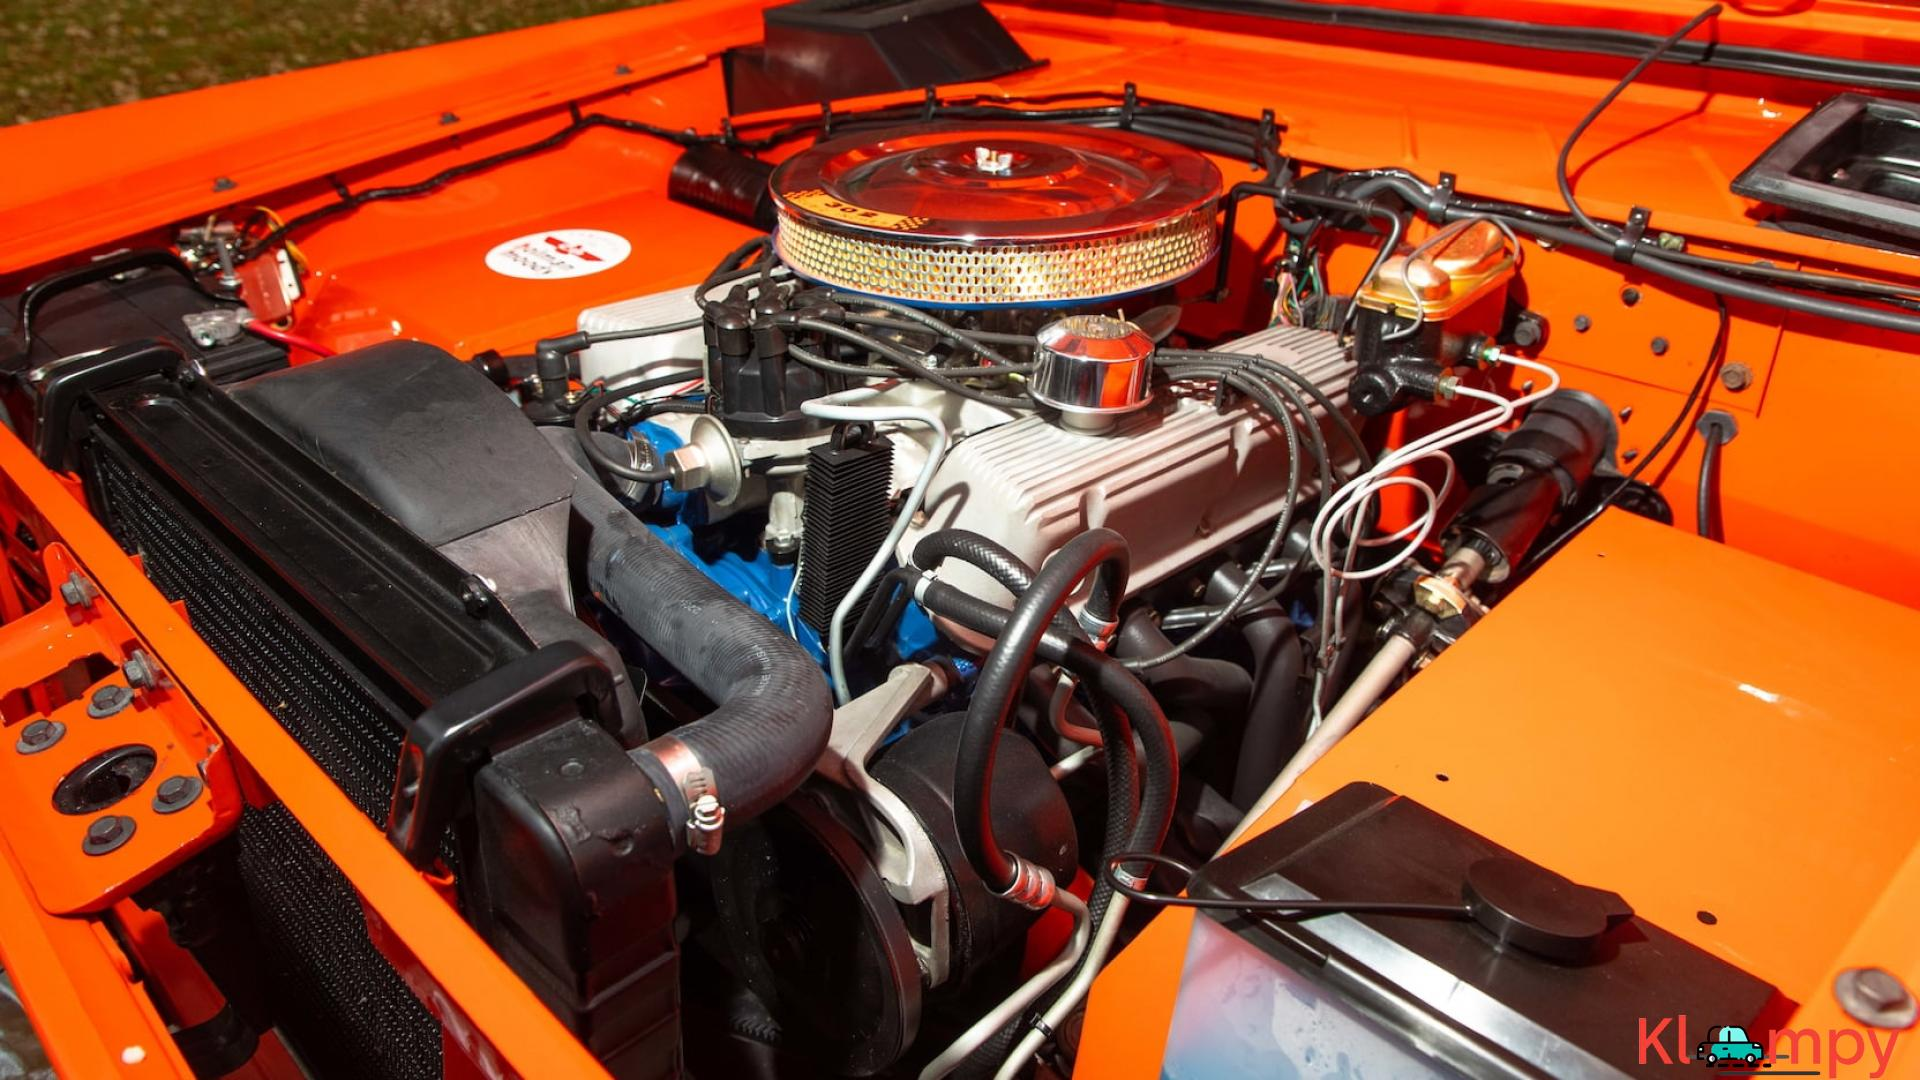 1969 Ford Bronco Sport Trim Package - Kloompy